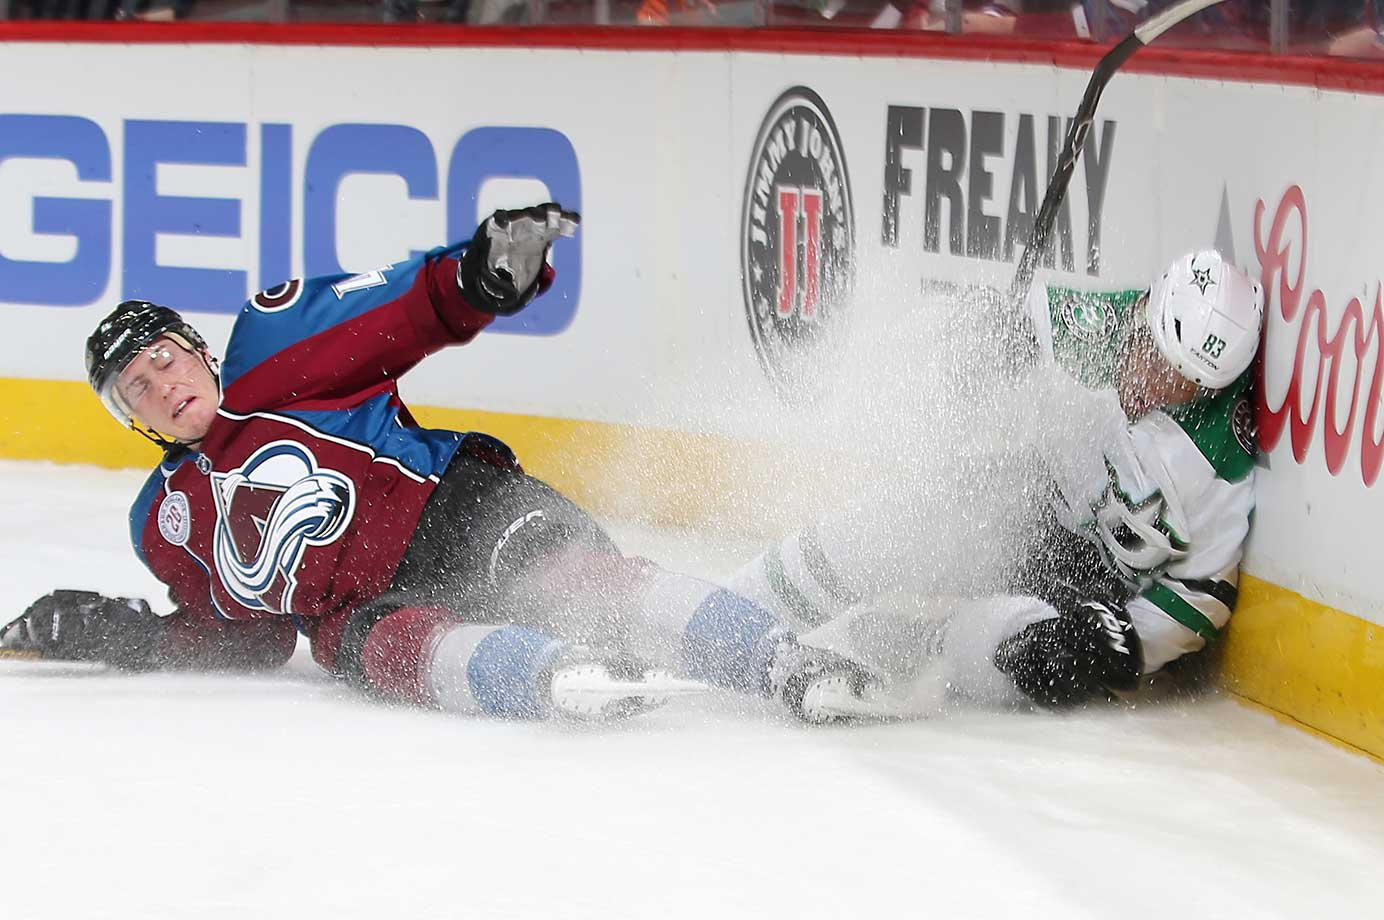 Ales Hemsky of the Dallas Stars falls to the ice after a goal against the Colorado Avalanche at the Pepsi Center in Colorado.